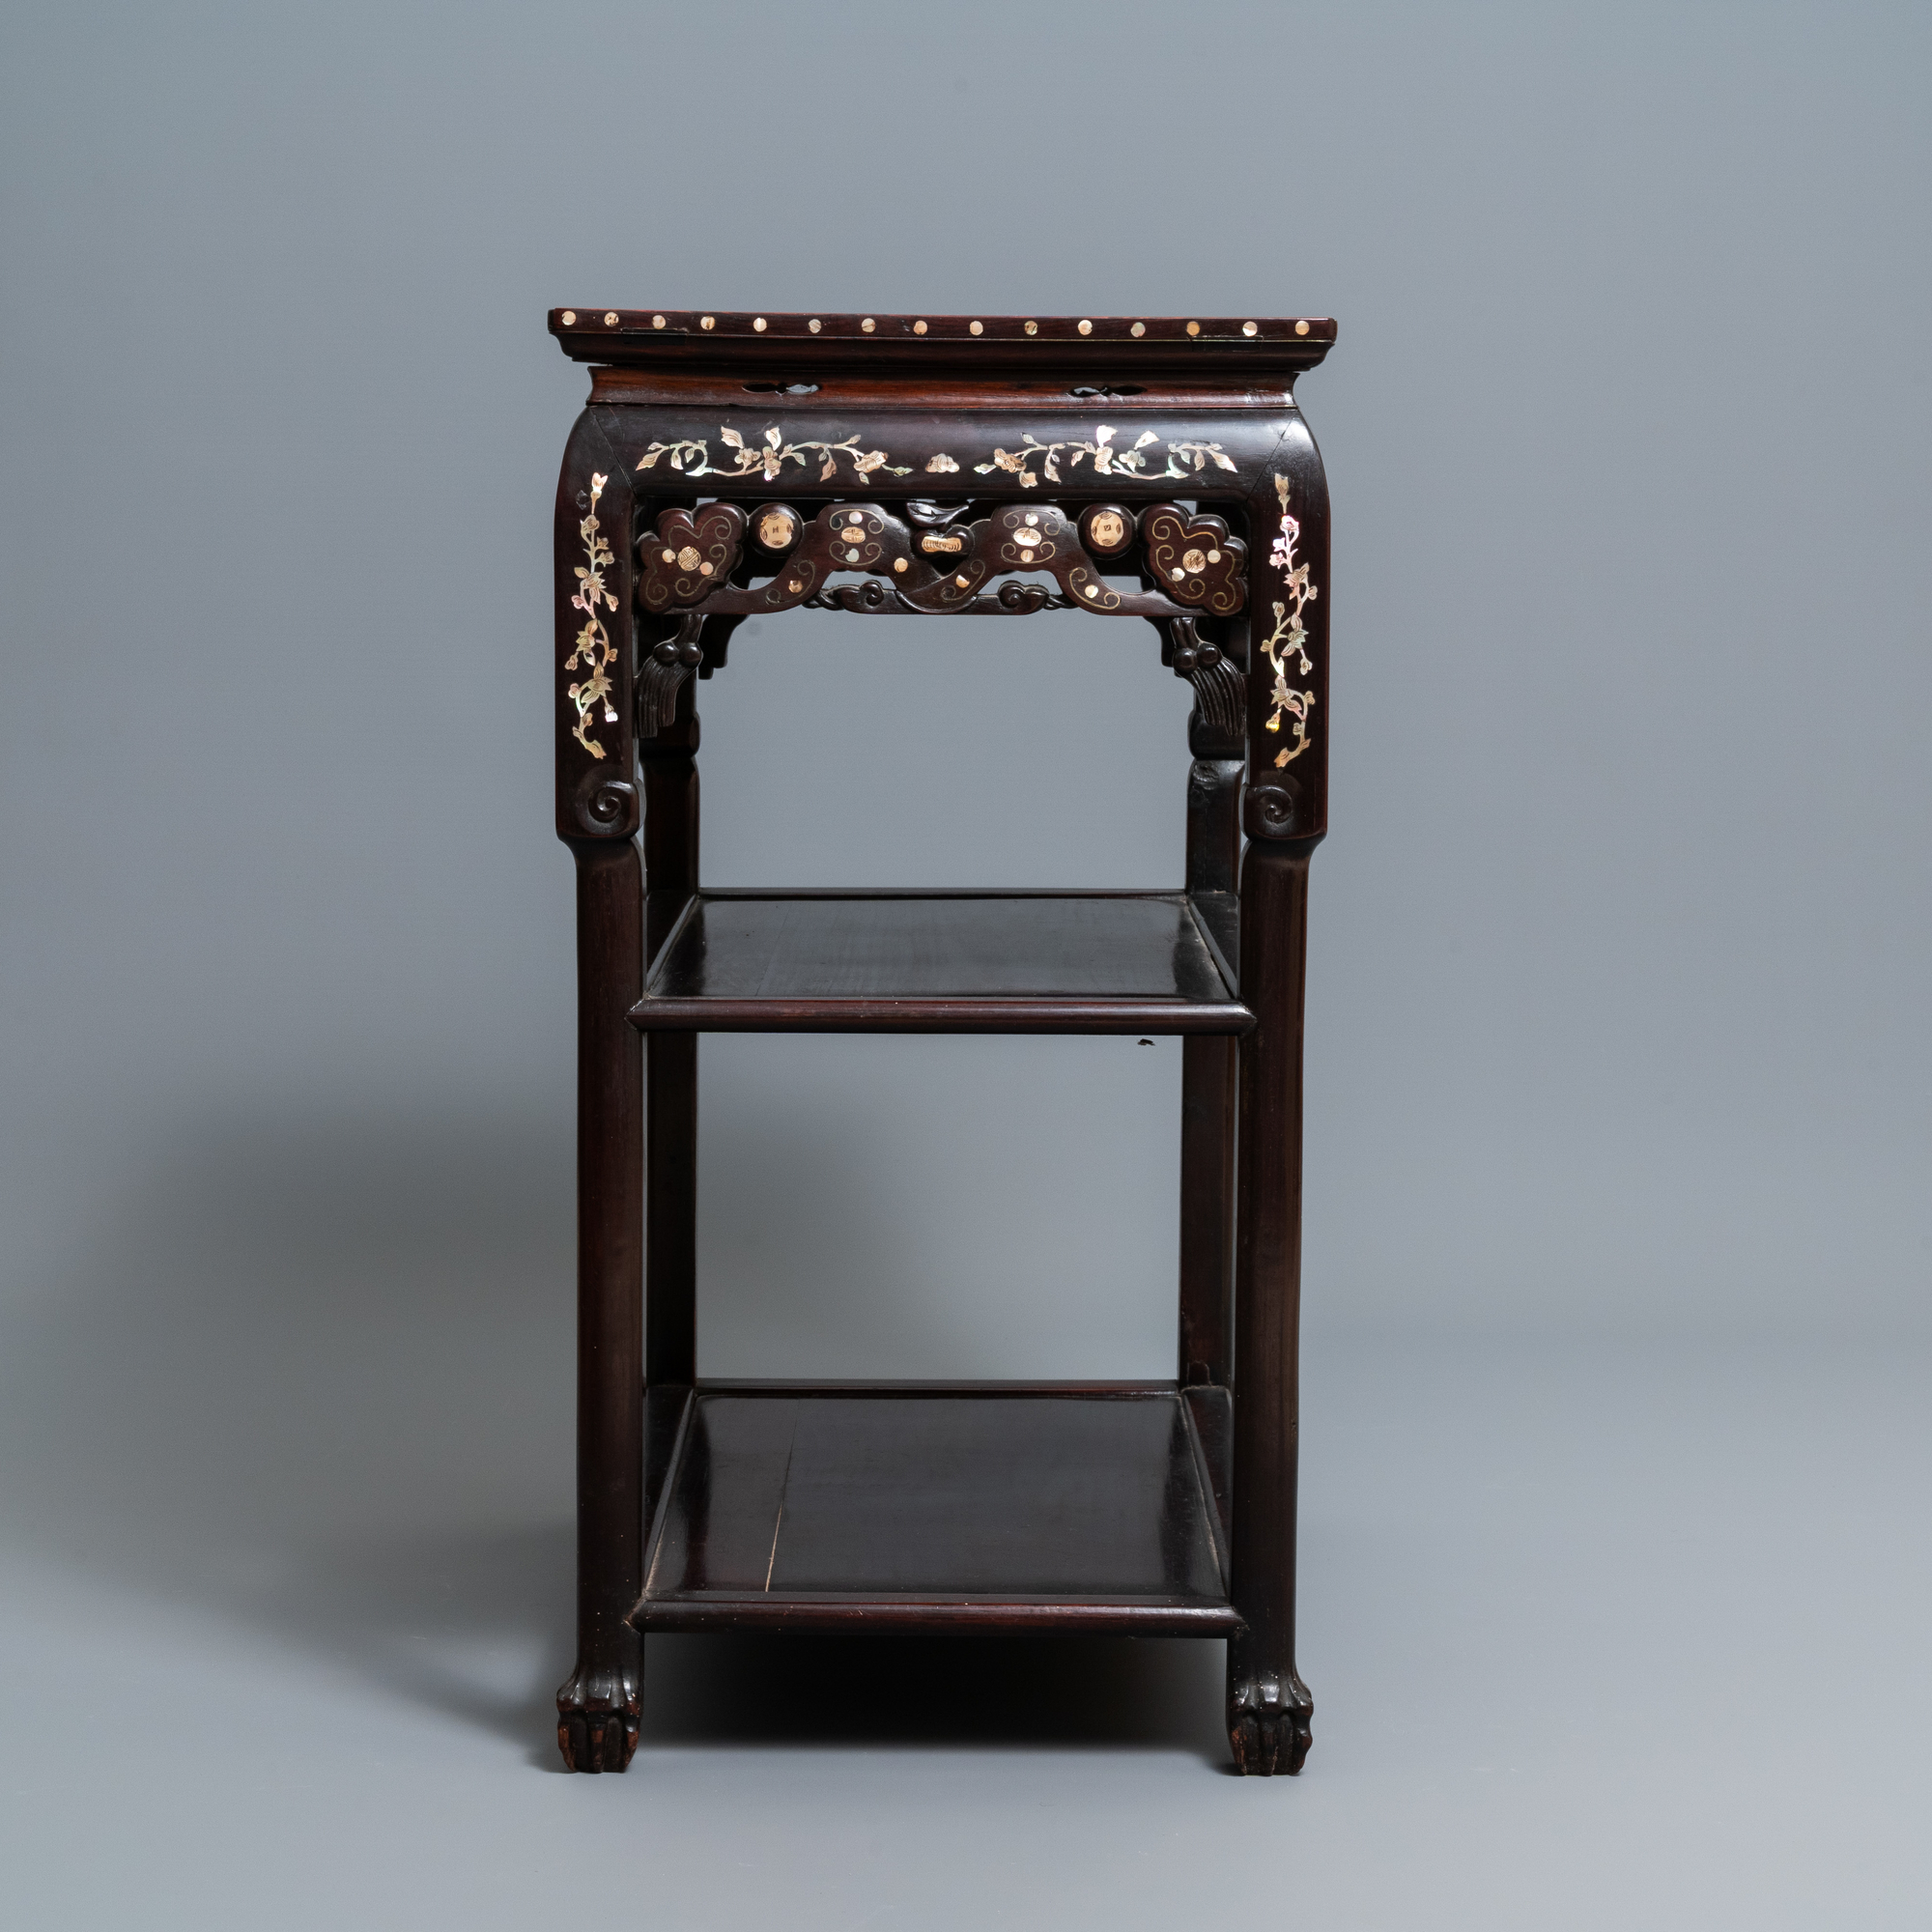 A Chinese mother-of-pearl-inlaid wooden sideboard with marble top, 19th C. - Image 5 of 10